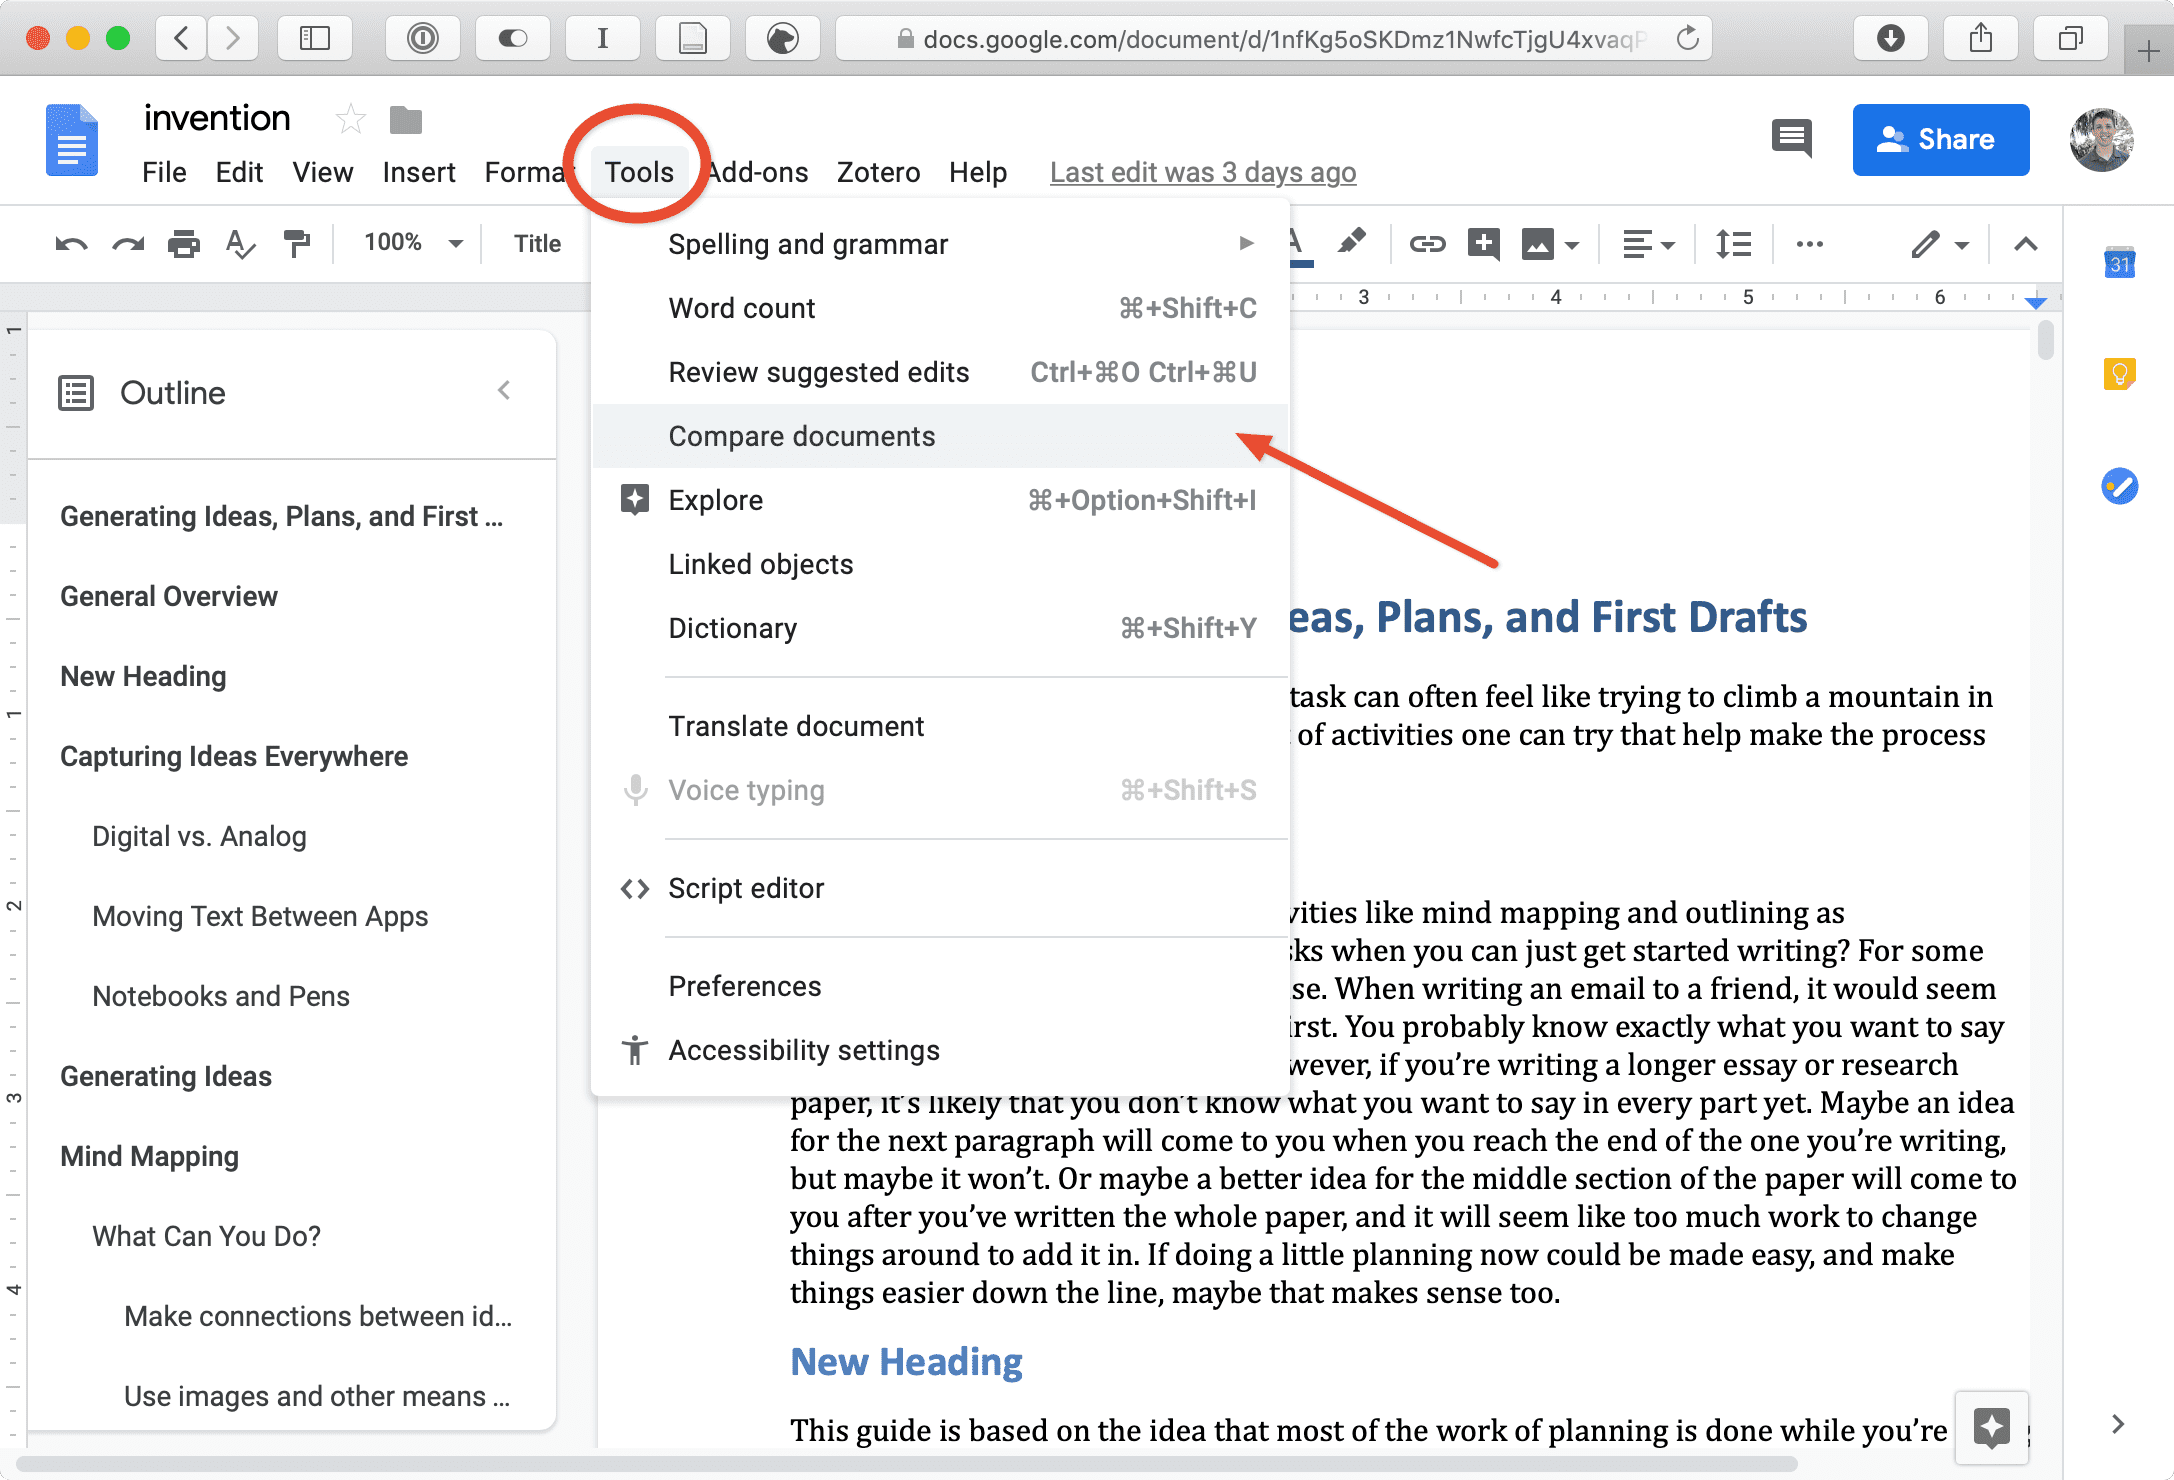 Finding the *compare documents* feature in Google Docs.